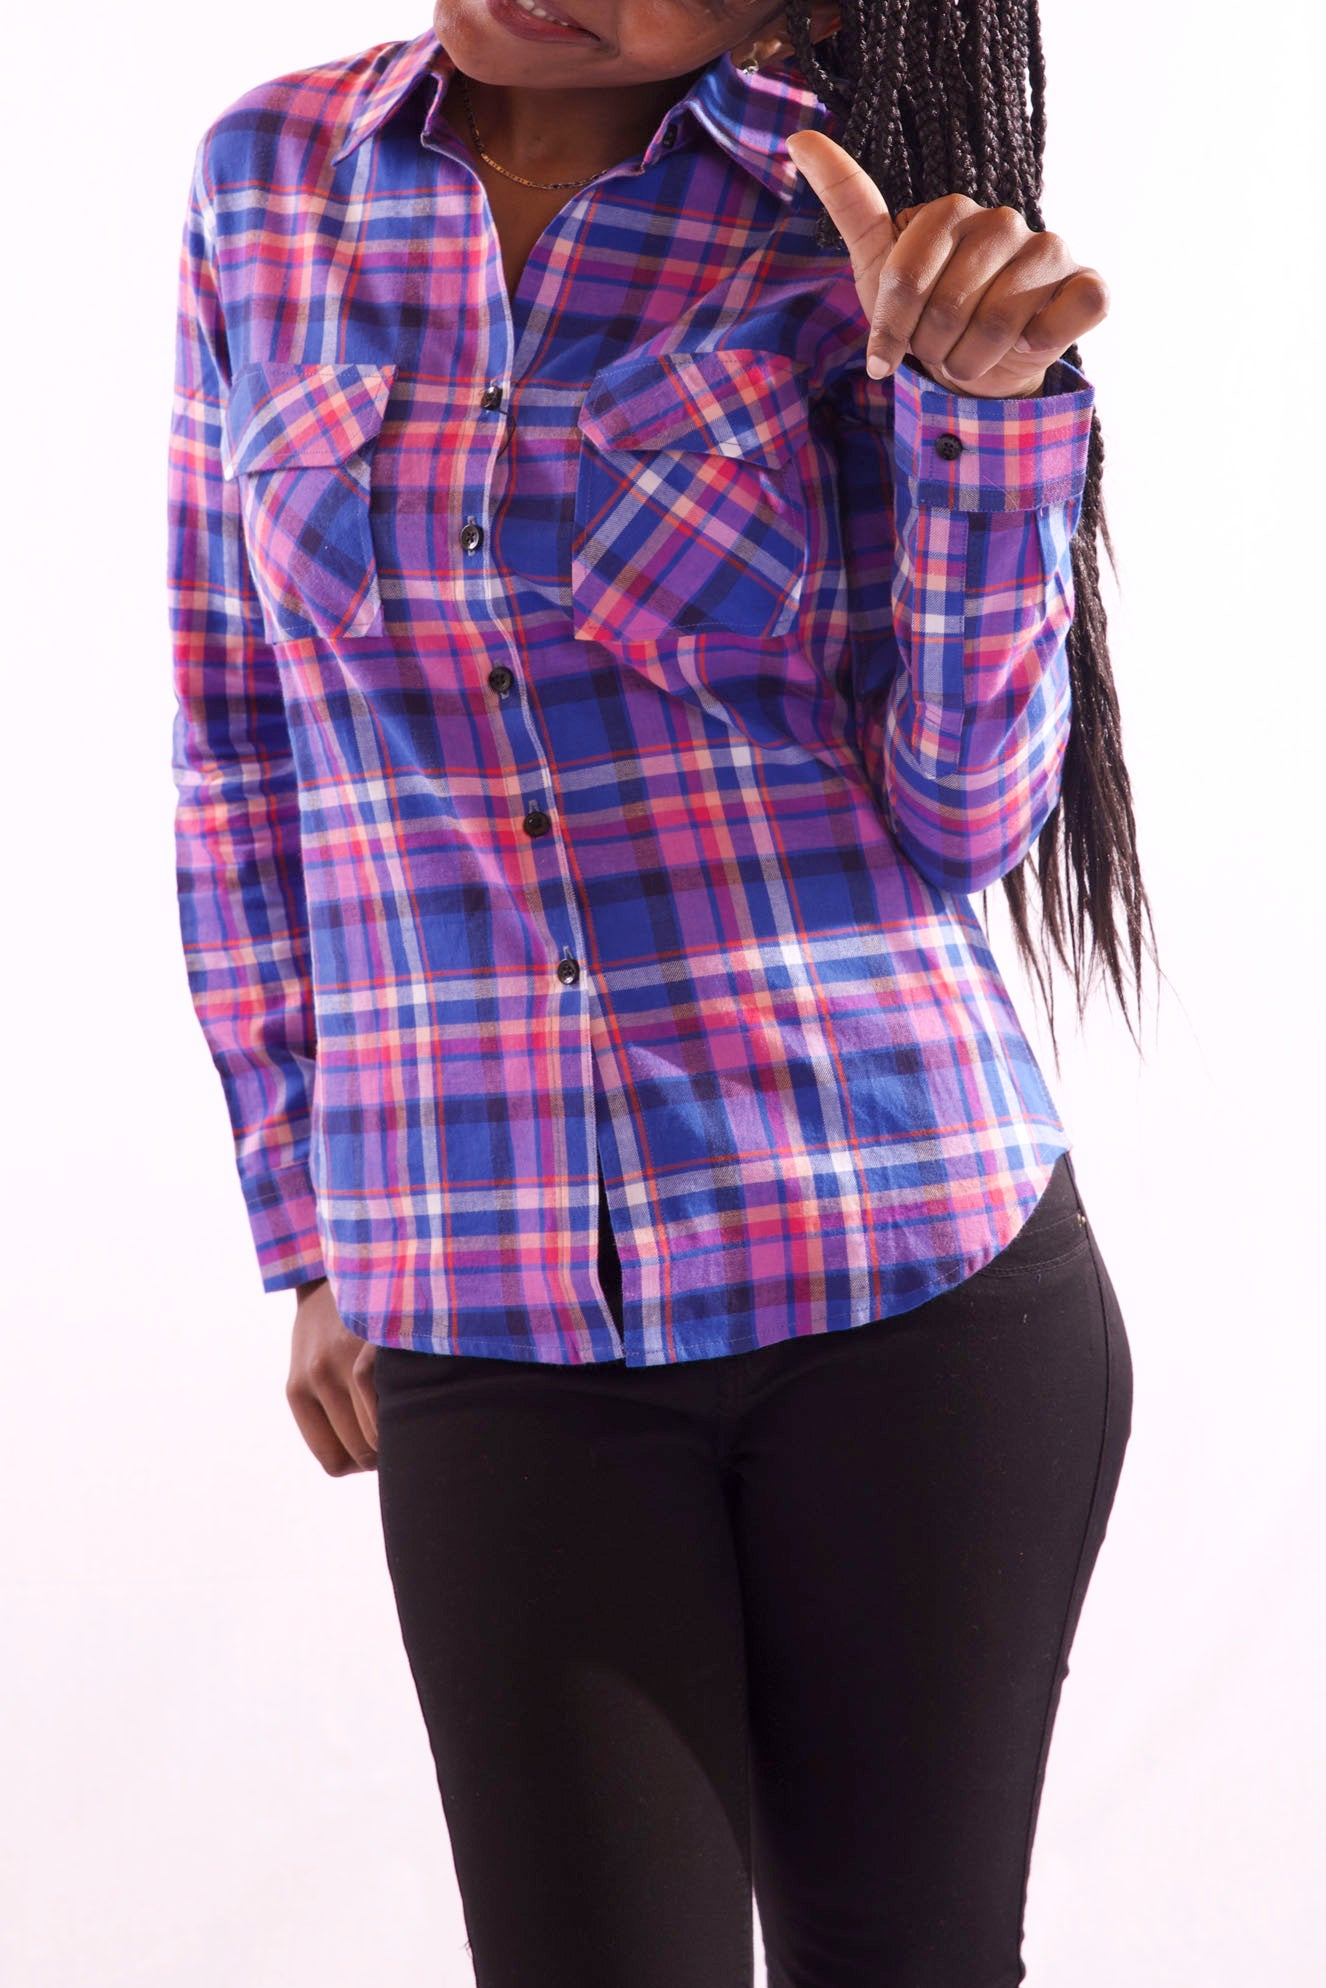 Women Full Sleeve Purple Shirt - Hillmarten